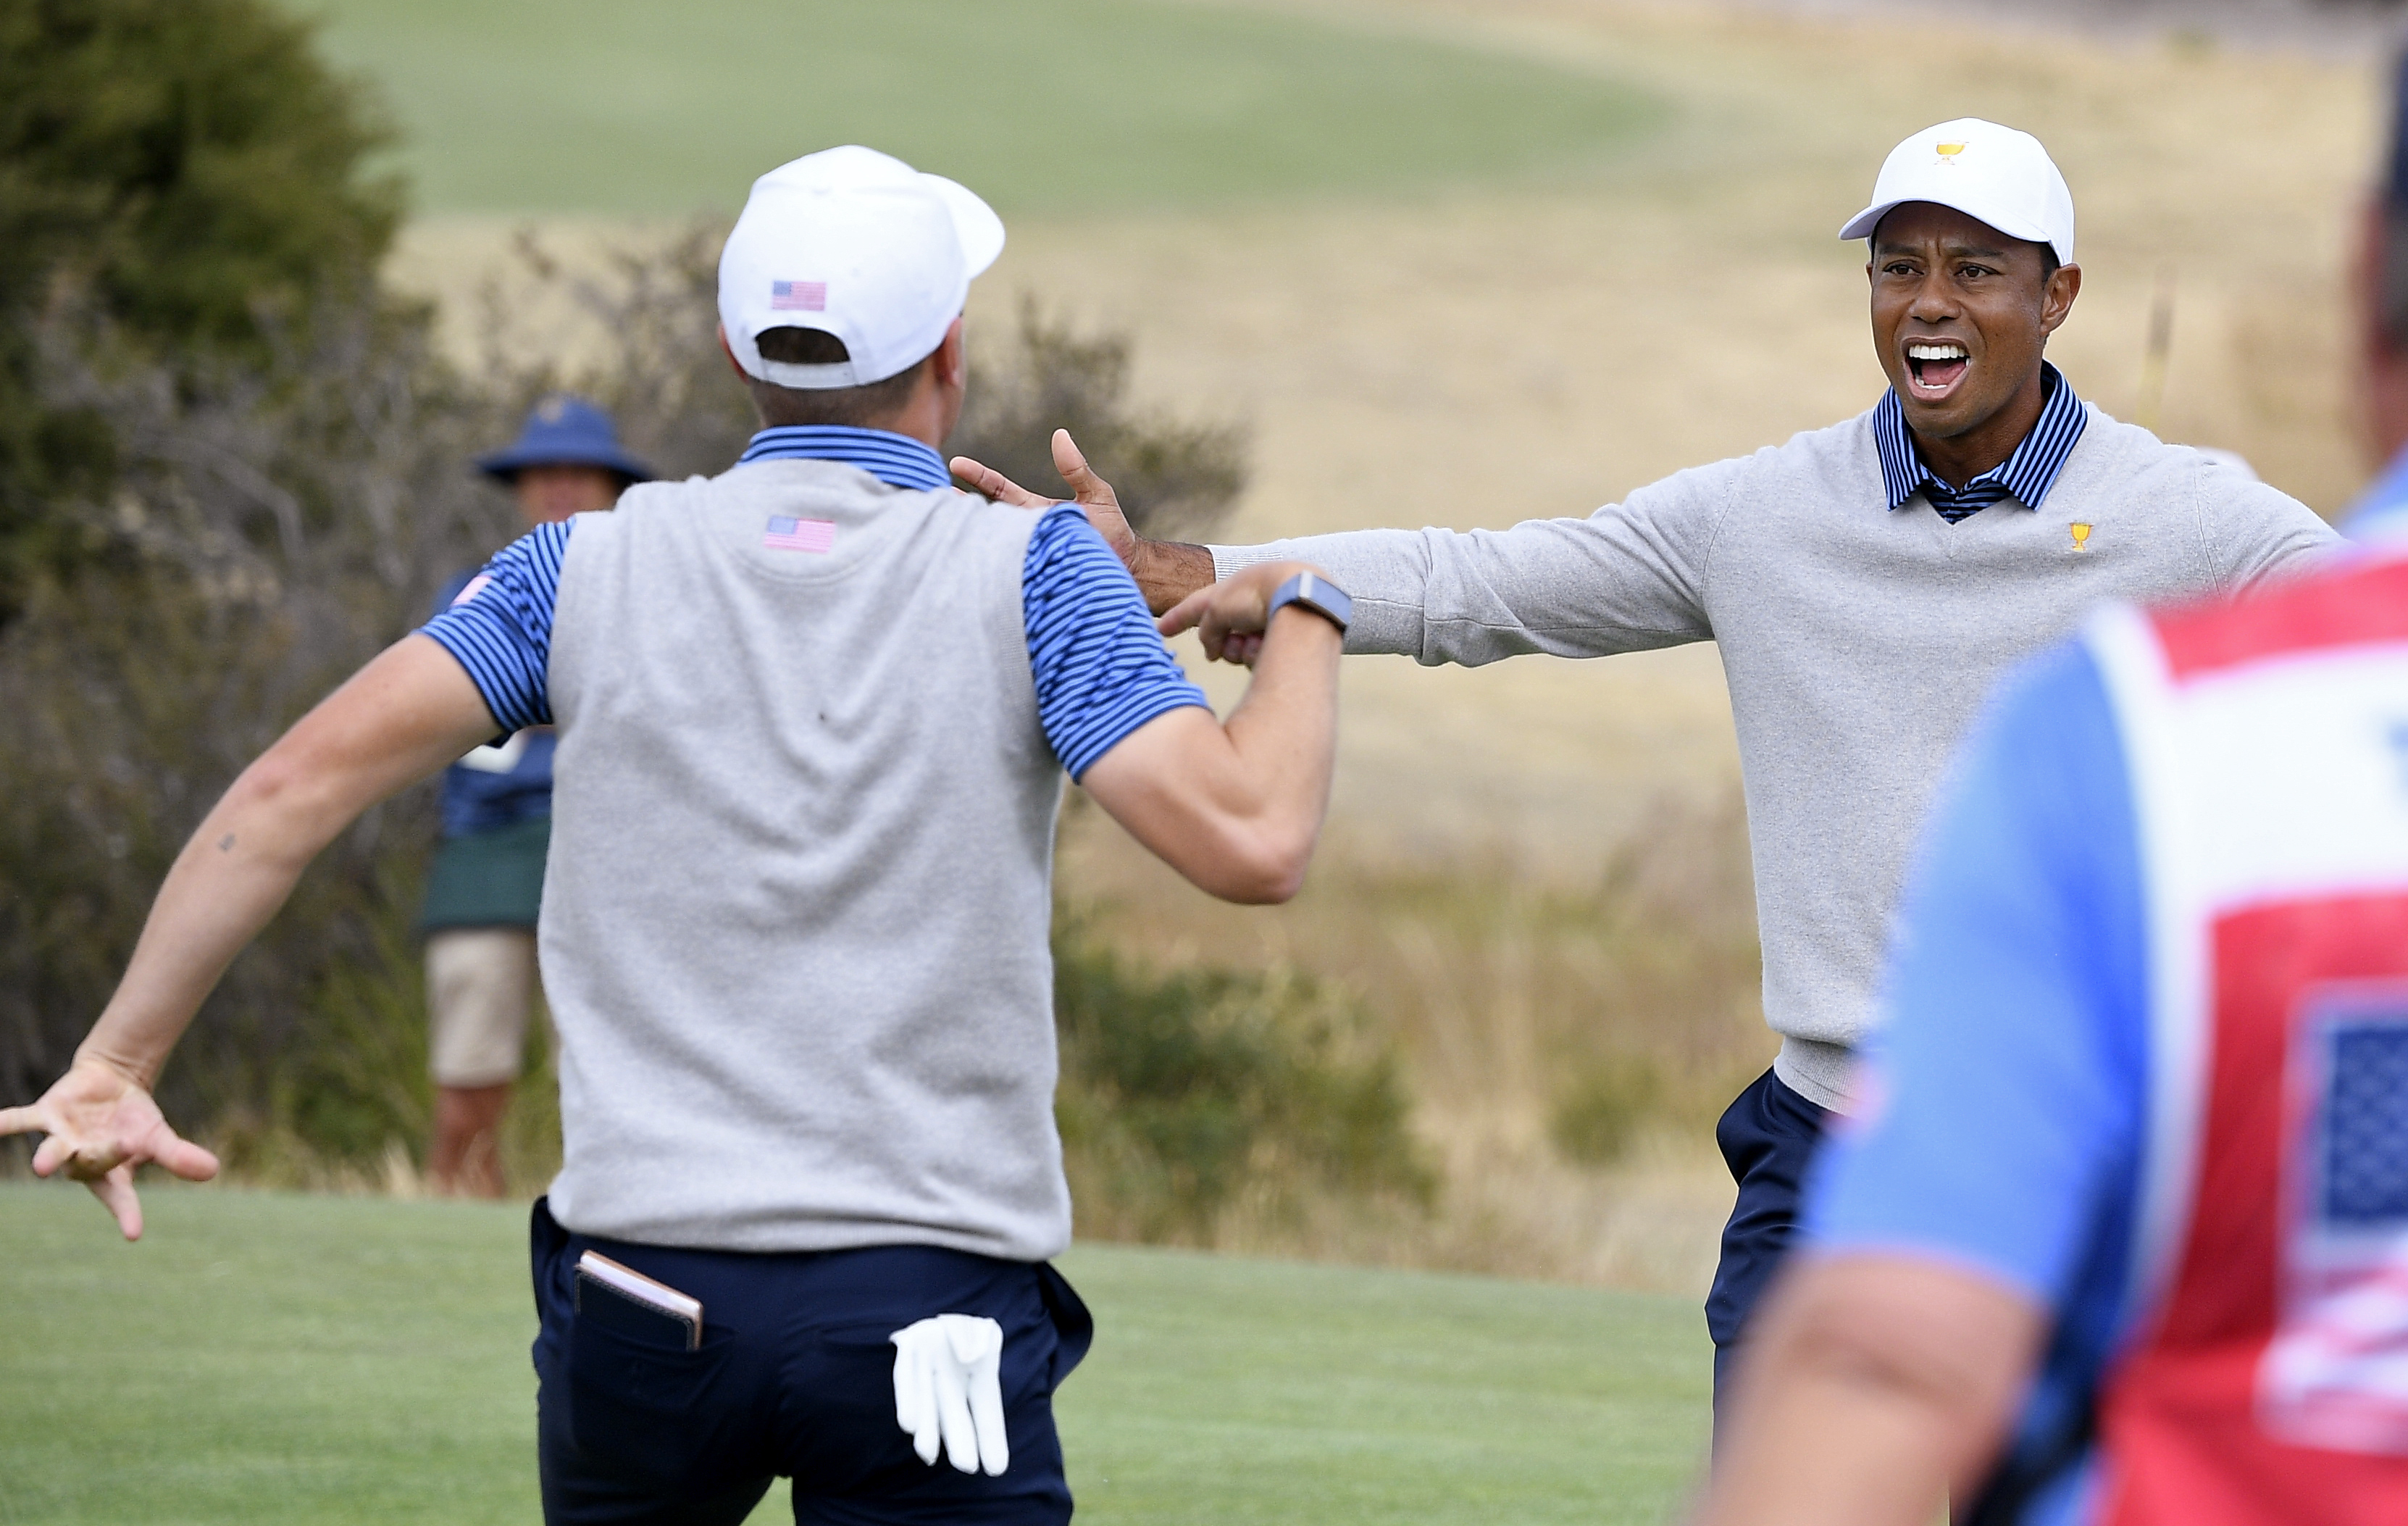 Tiger Woods' American team rallies at Presidents Cup, still trails internationals